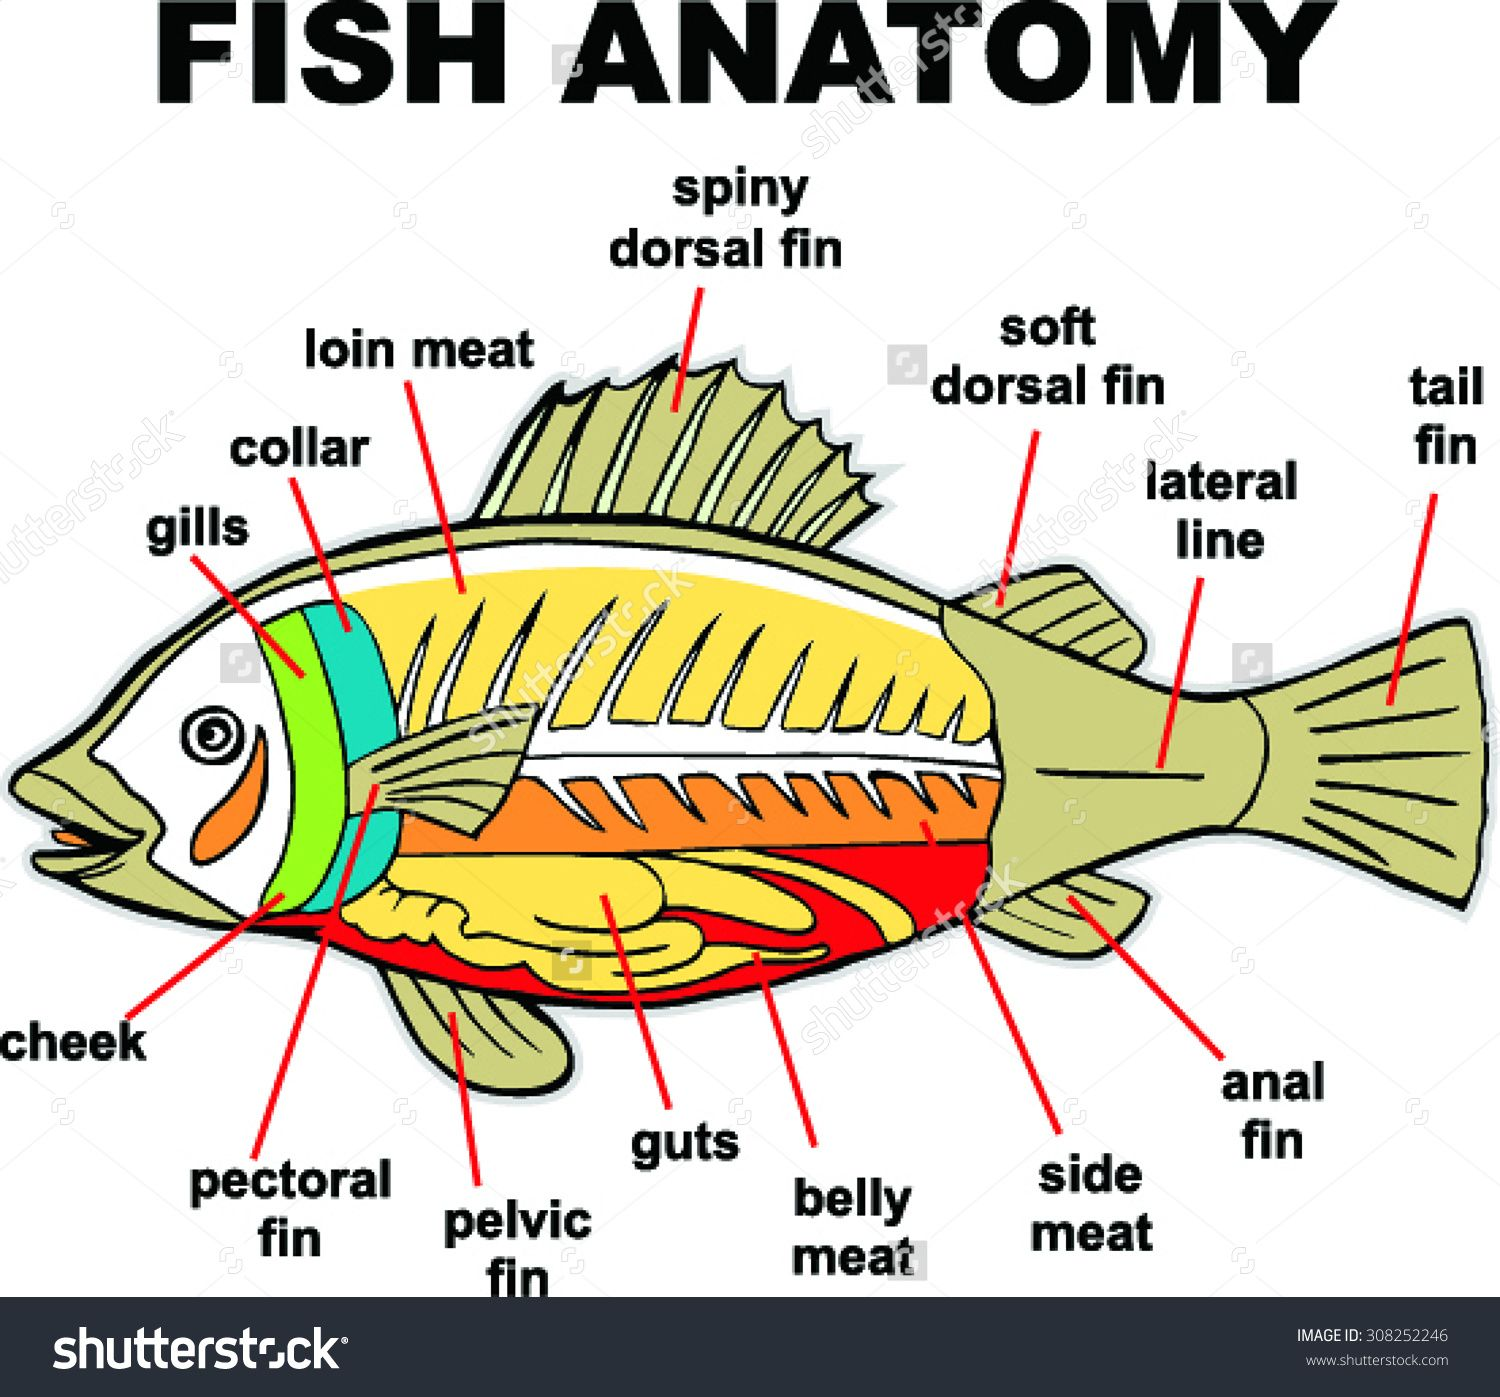 Worksheets Fish Anatomy Worksheet Cheatslist Free